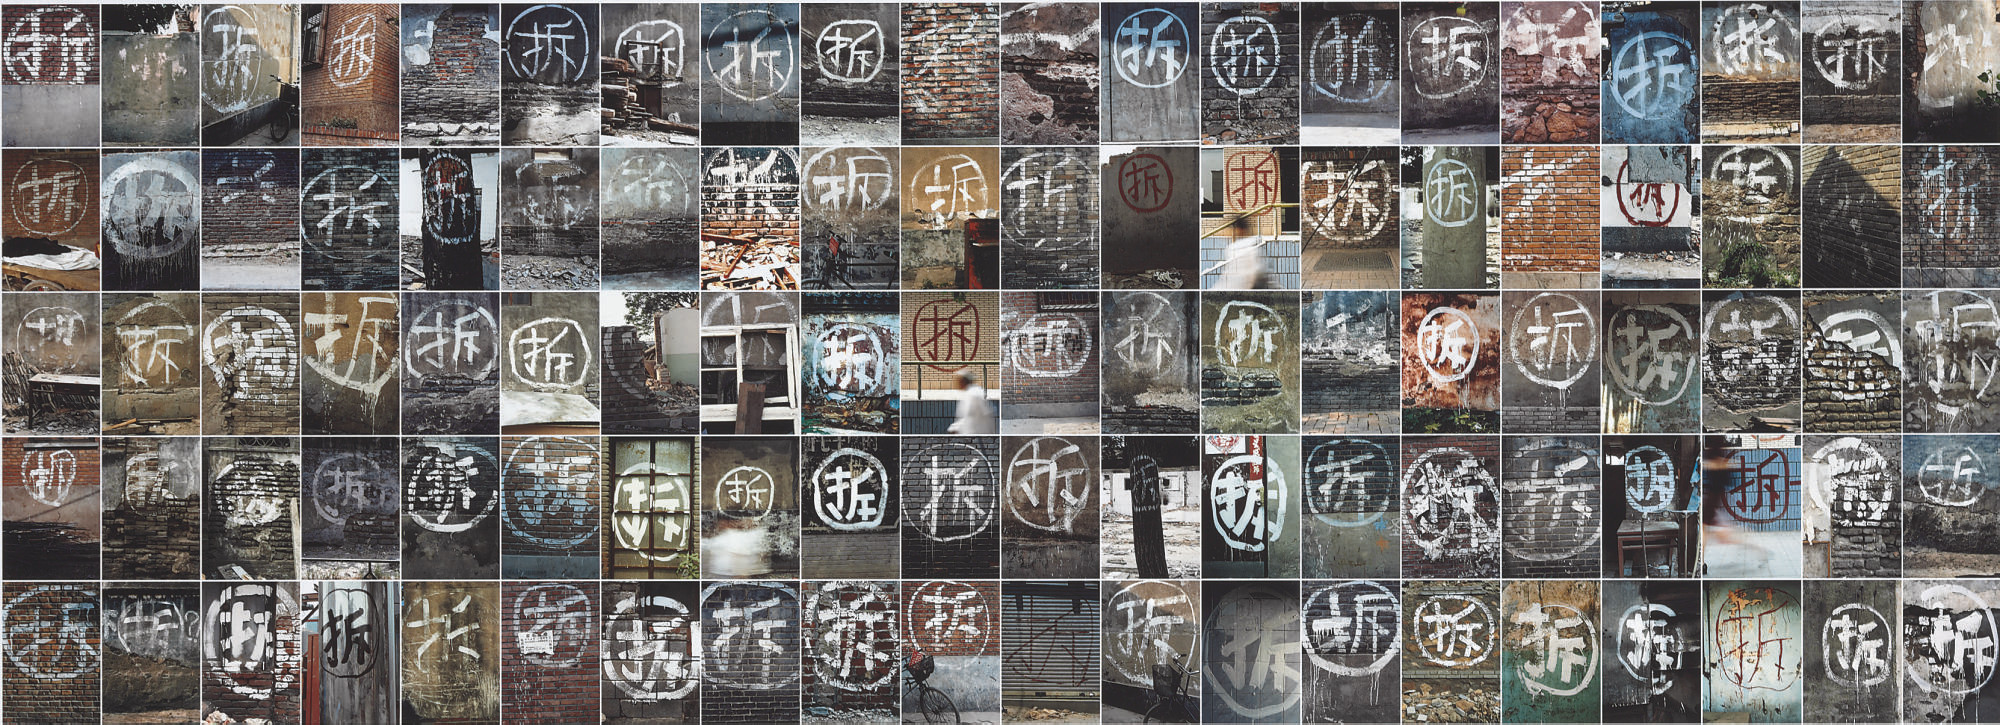 One Hundred Signs of the Demolition